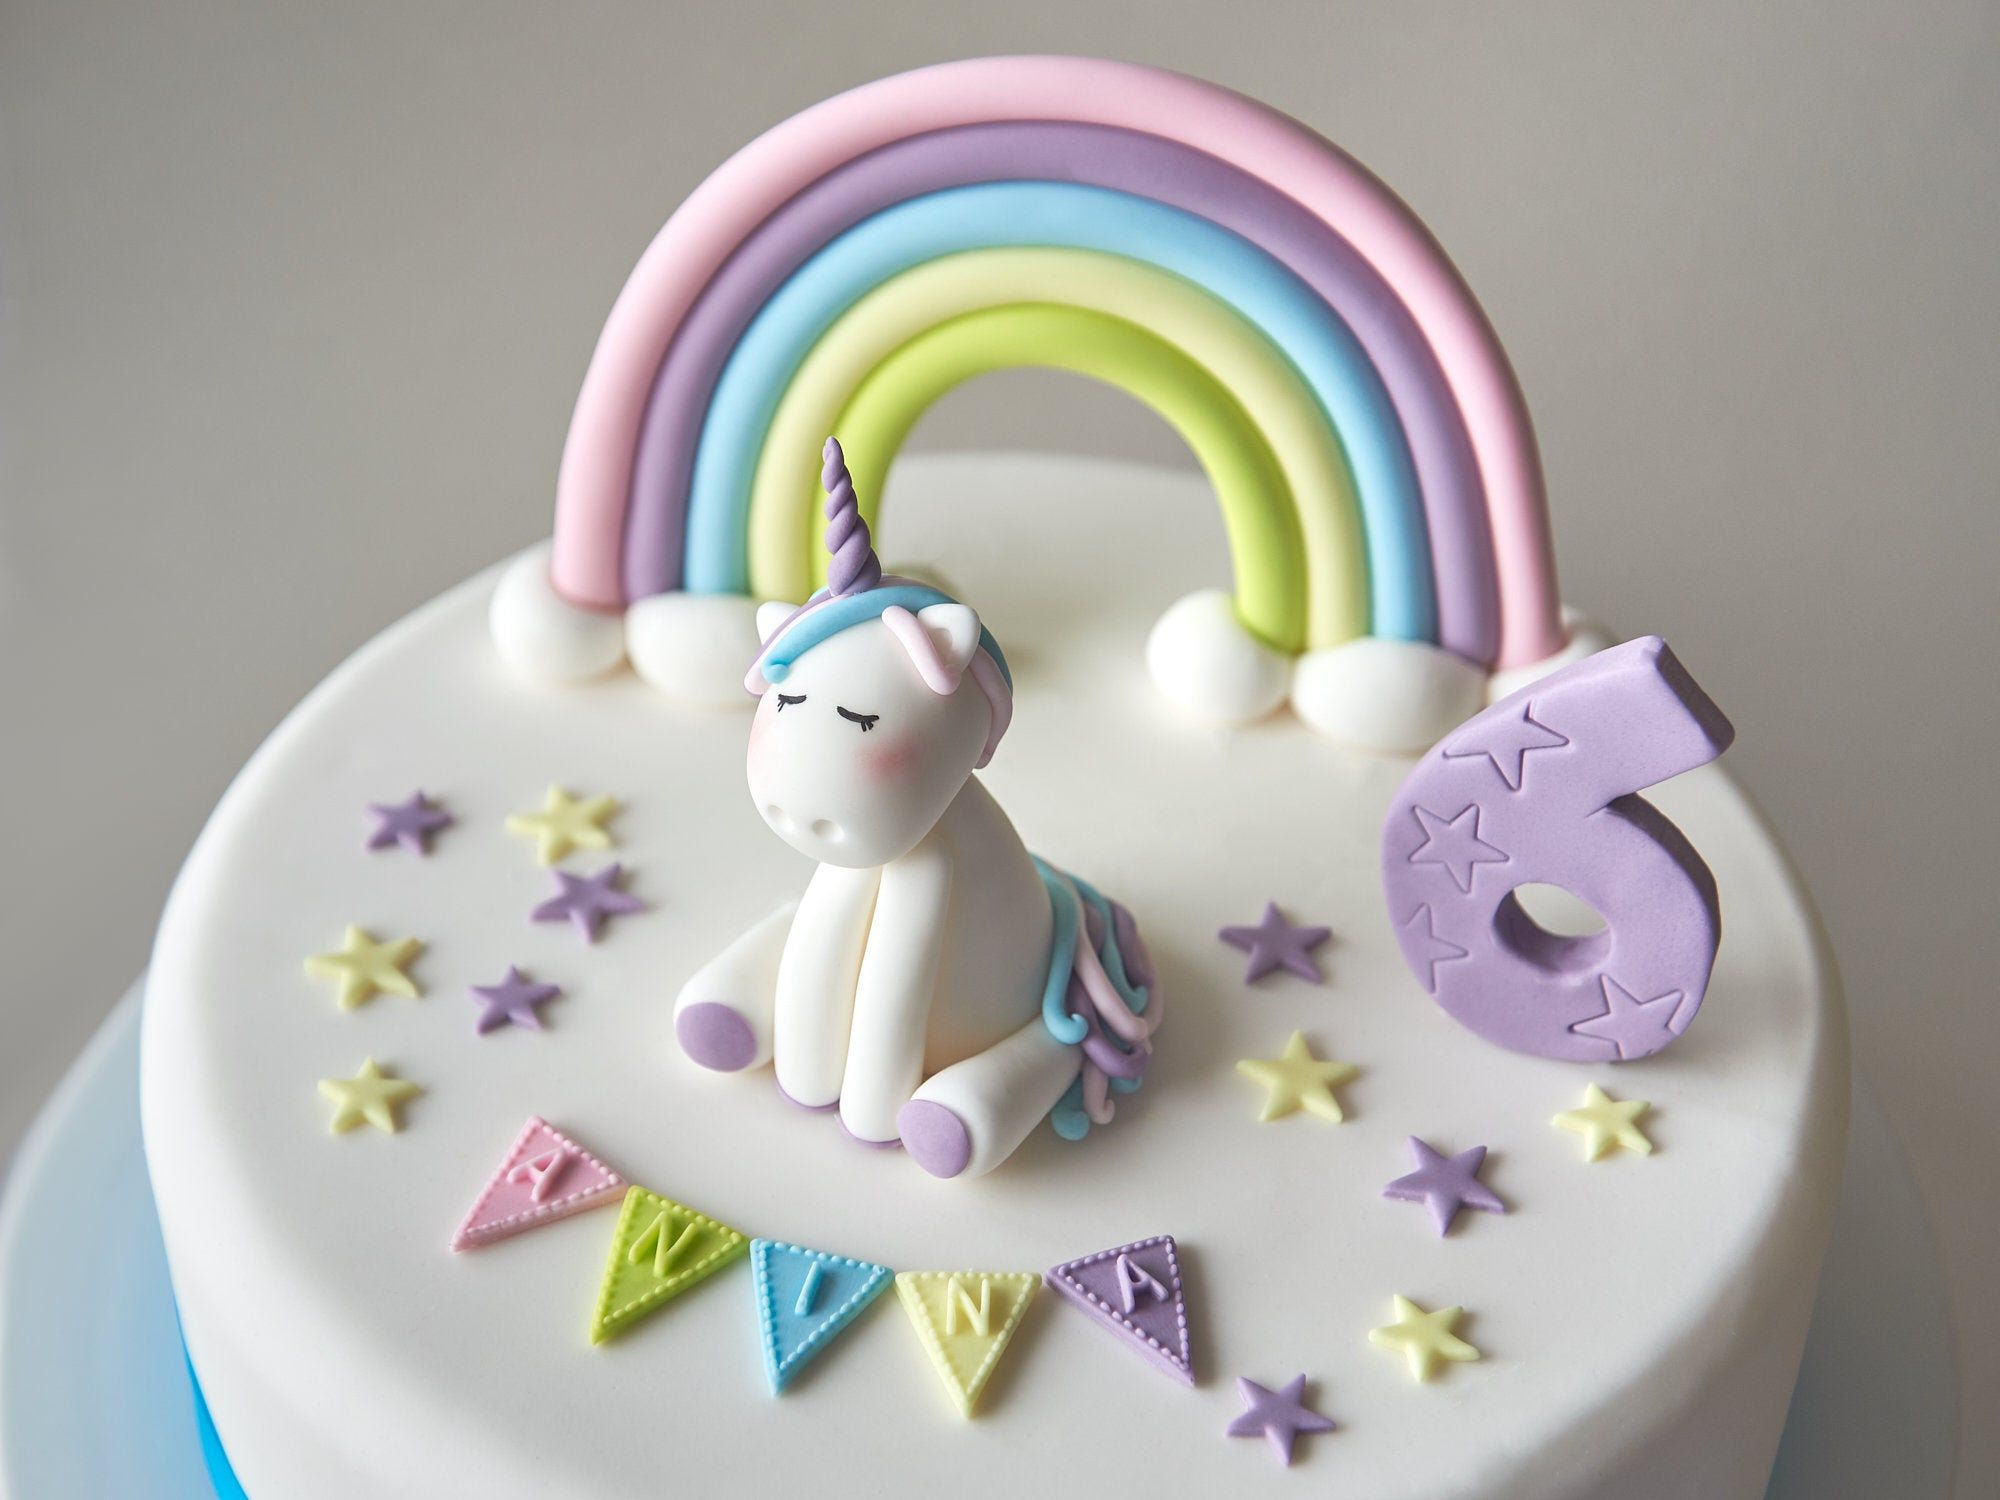 EDIBLE SUGARPASTE ICING PASTEL HAPPY BIRTHDAY NAME LETTERS CAKE TOPPERS